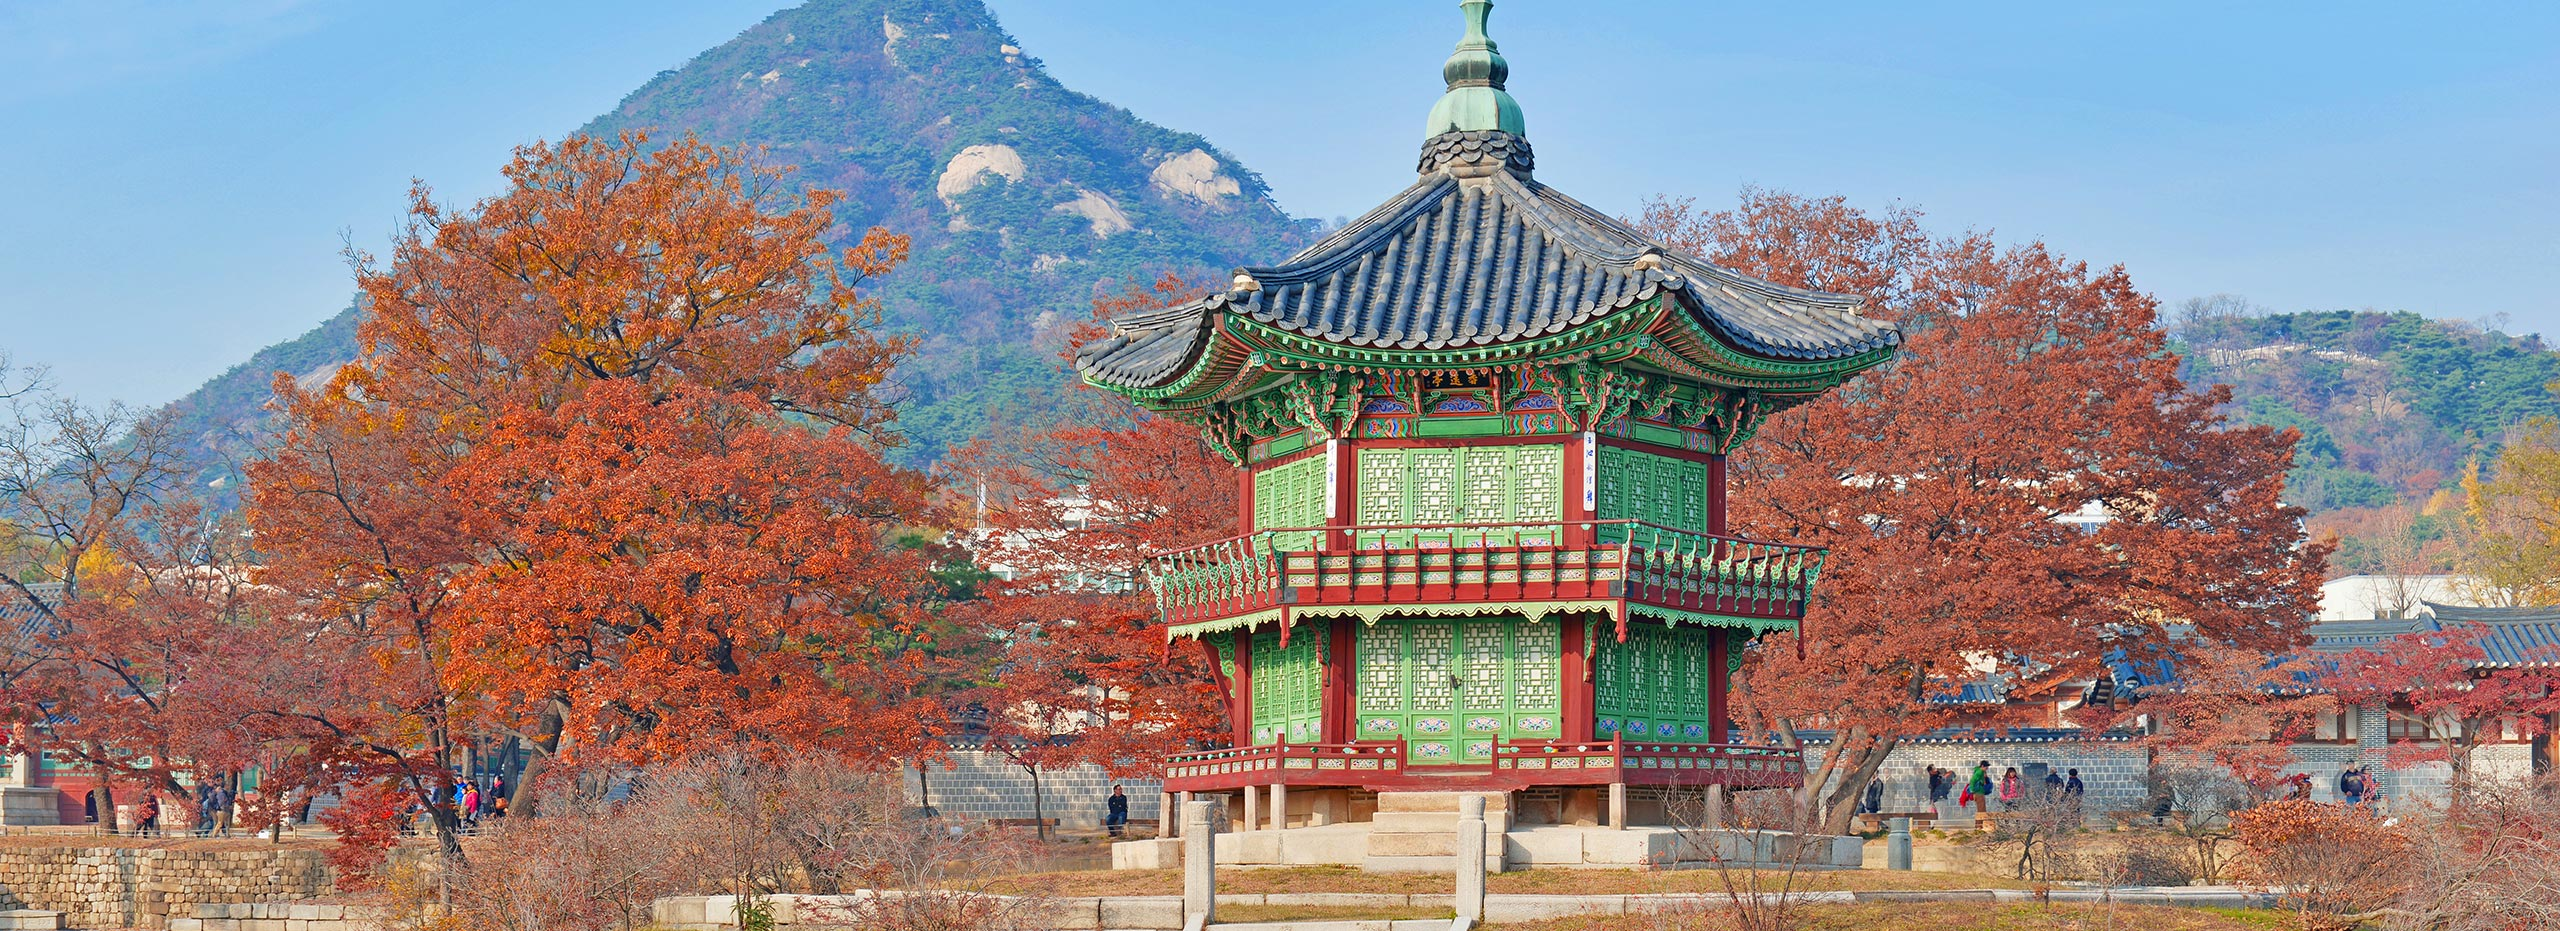 car hire rentals south korea shrine